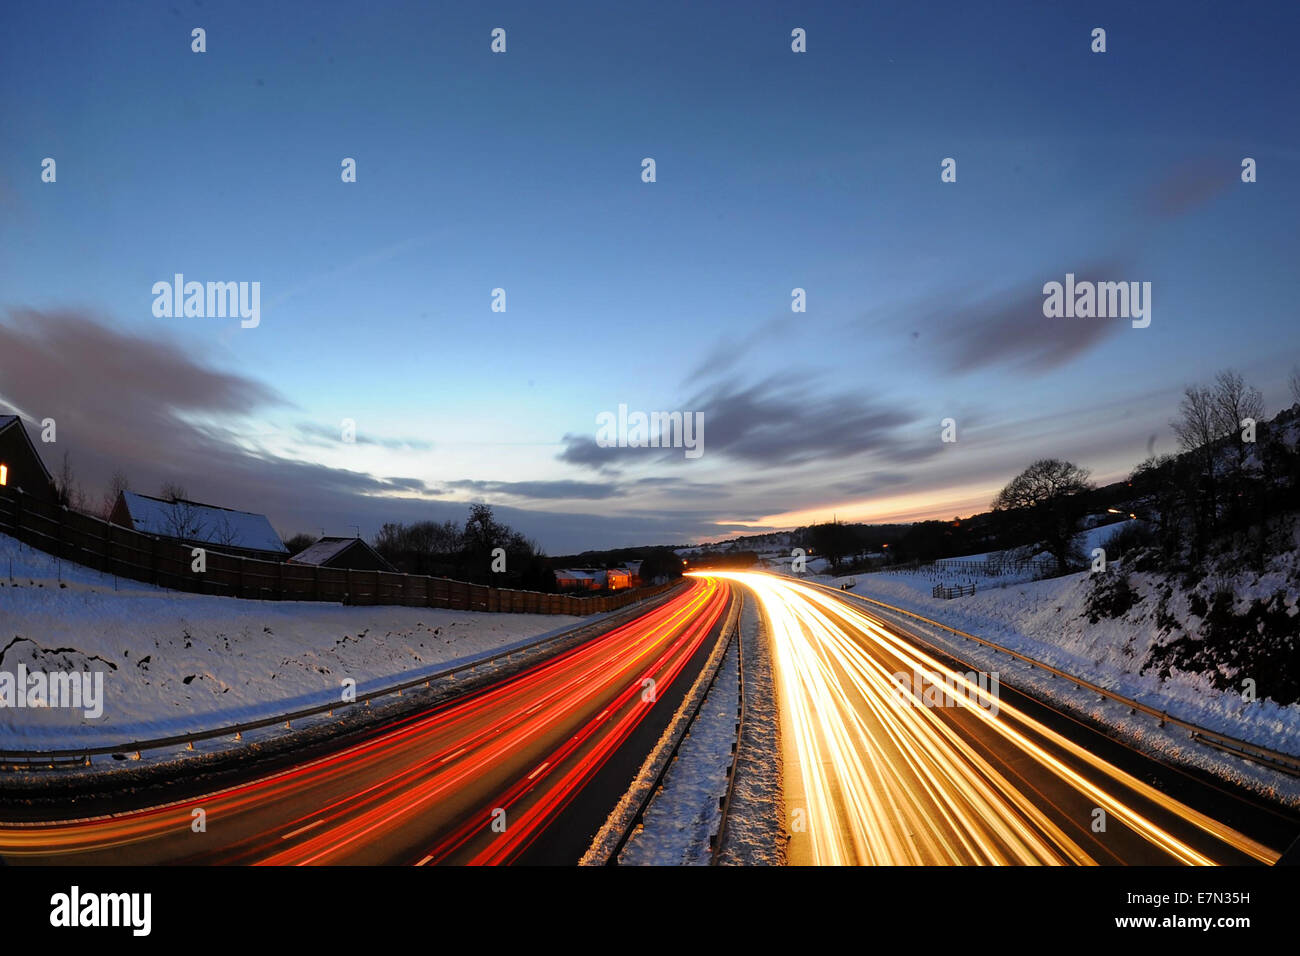 Heavy motorway traffic at rush hour at night on the M4 in the UK following snow fall. - Stock Image